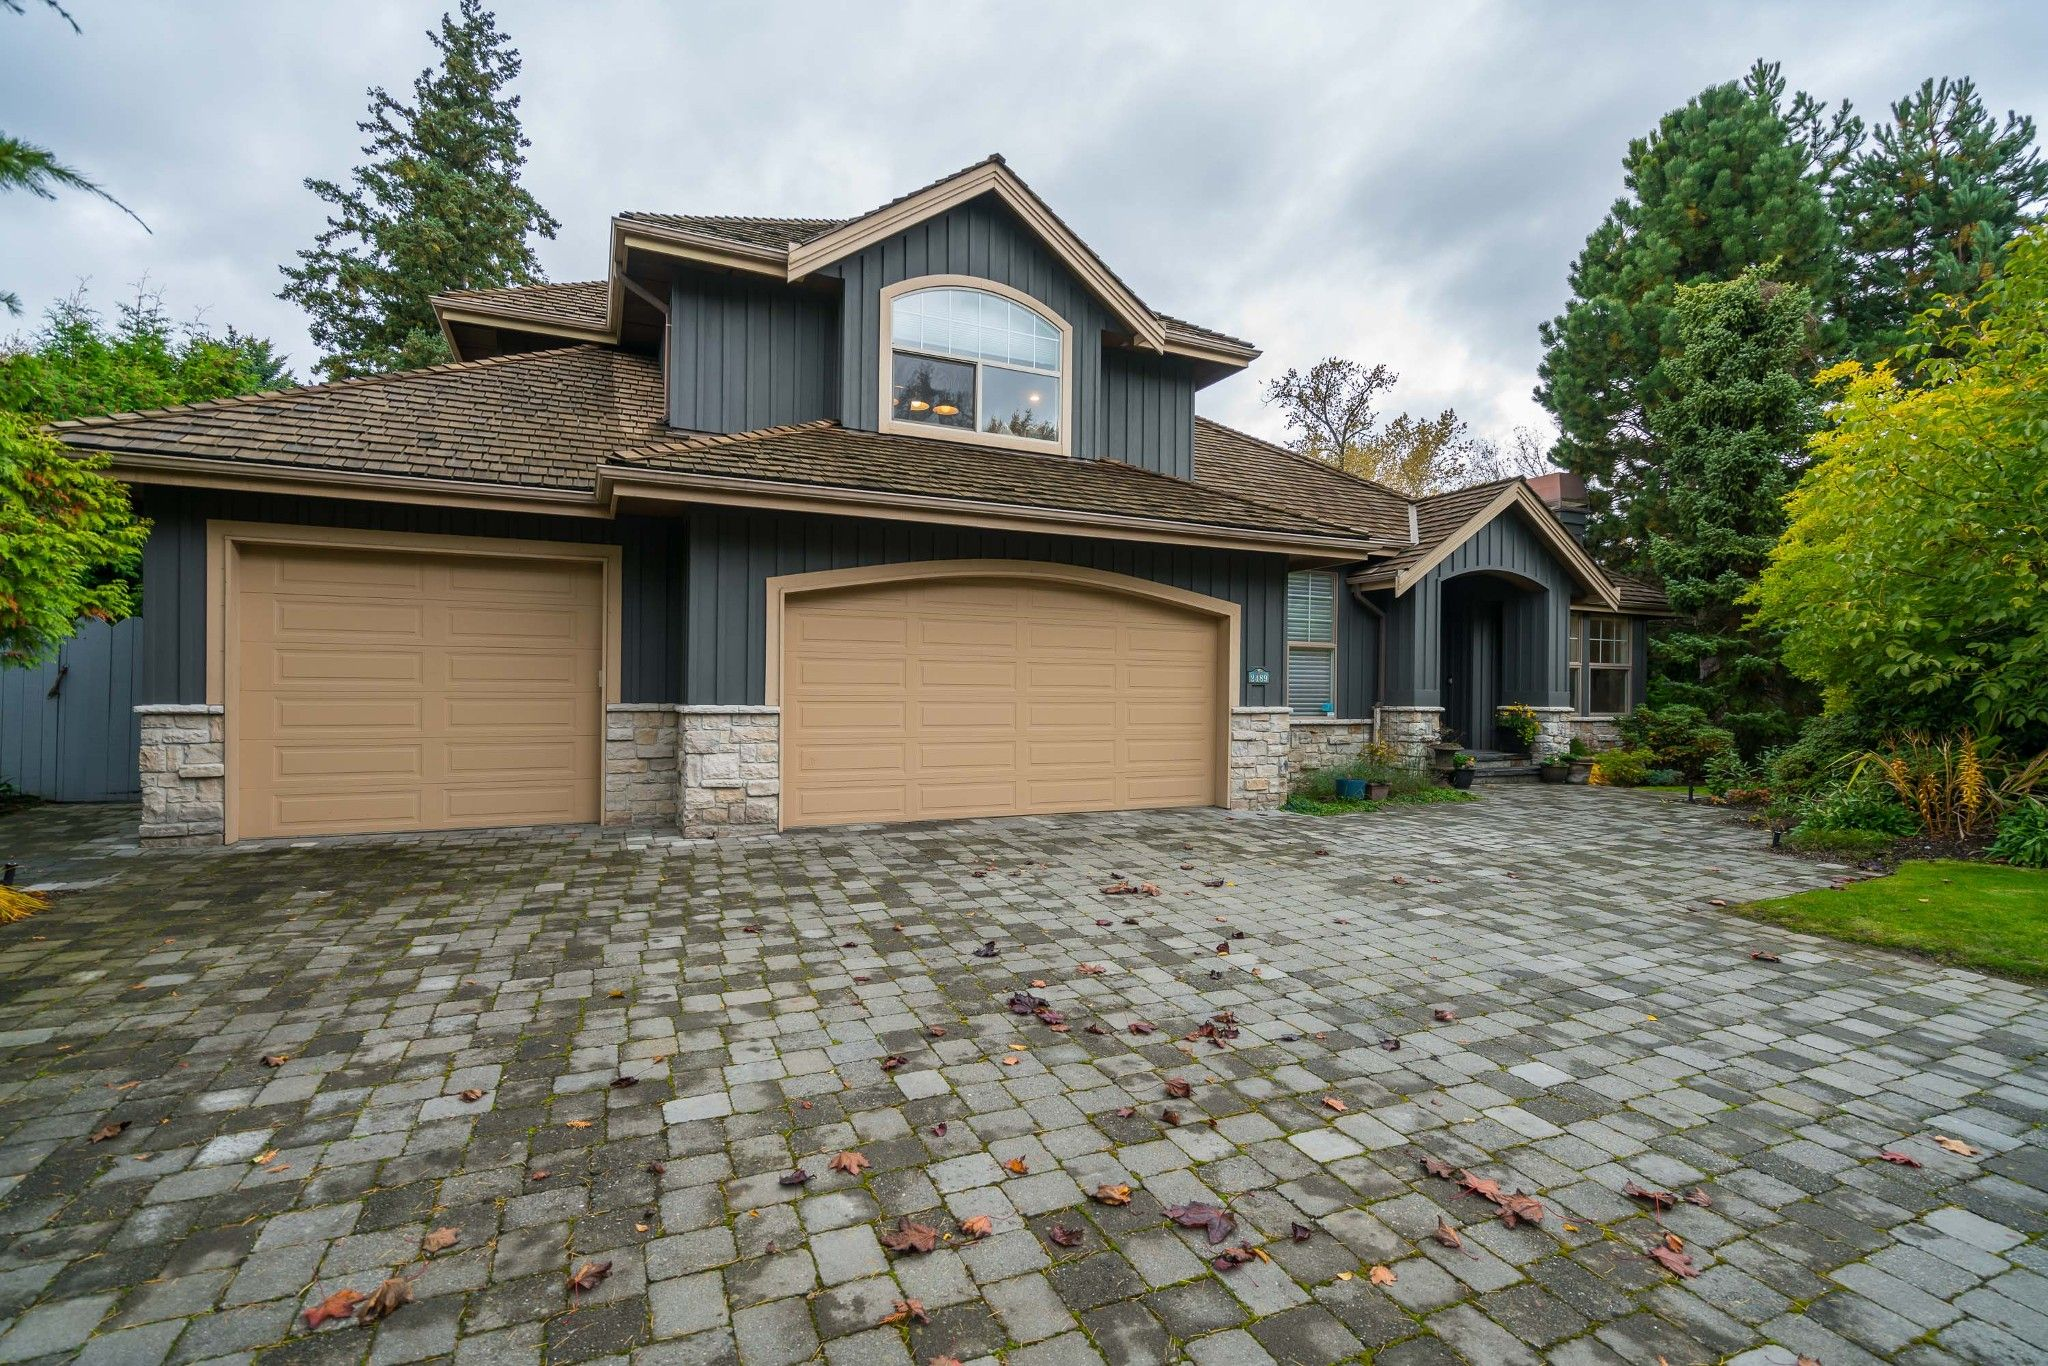 """Main Photo: 2489 138 Street in Surrey: Elgin Chantrell House for sale in """"PENINSULA PARK"""" (South Surrey White Rock)  : MLS®# R2414226"""